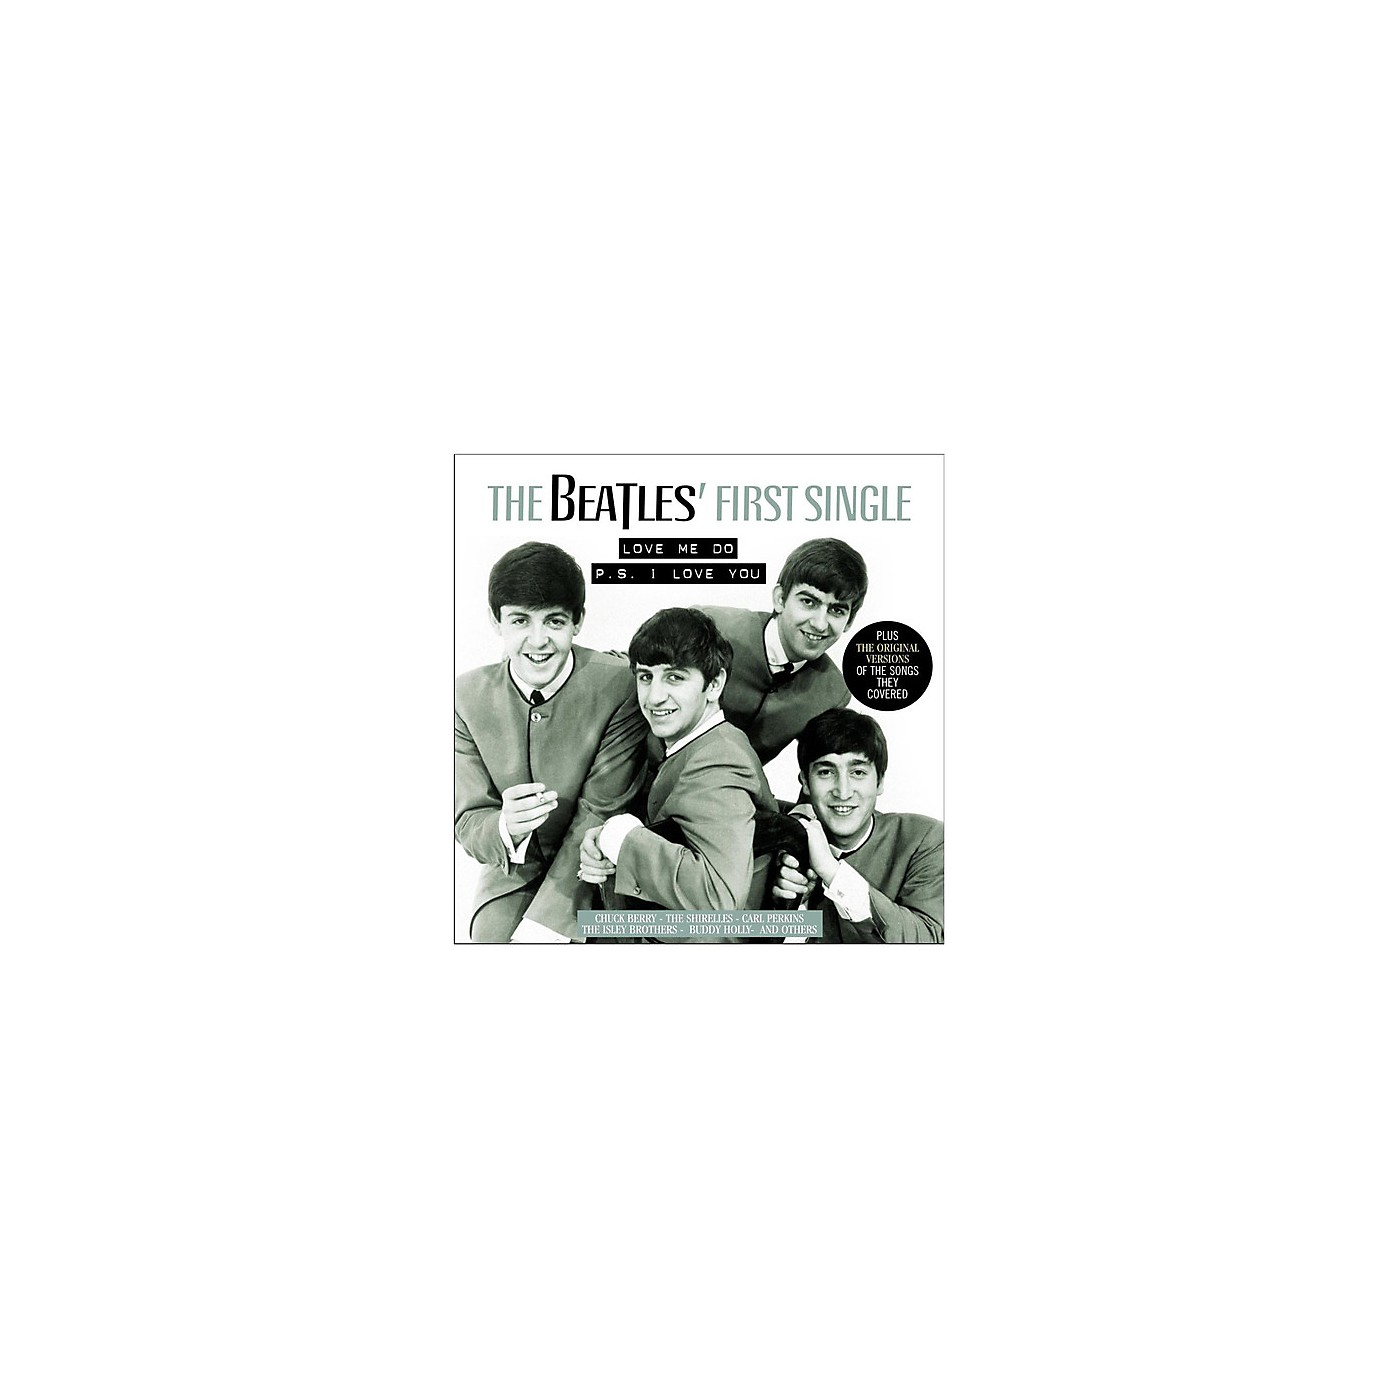 Alliance The Beatles - Beatles First Single: Love Me Do / PS I Love You thumbnail